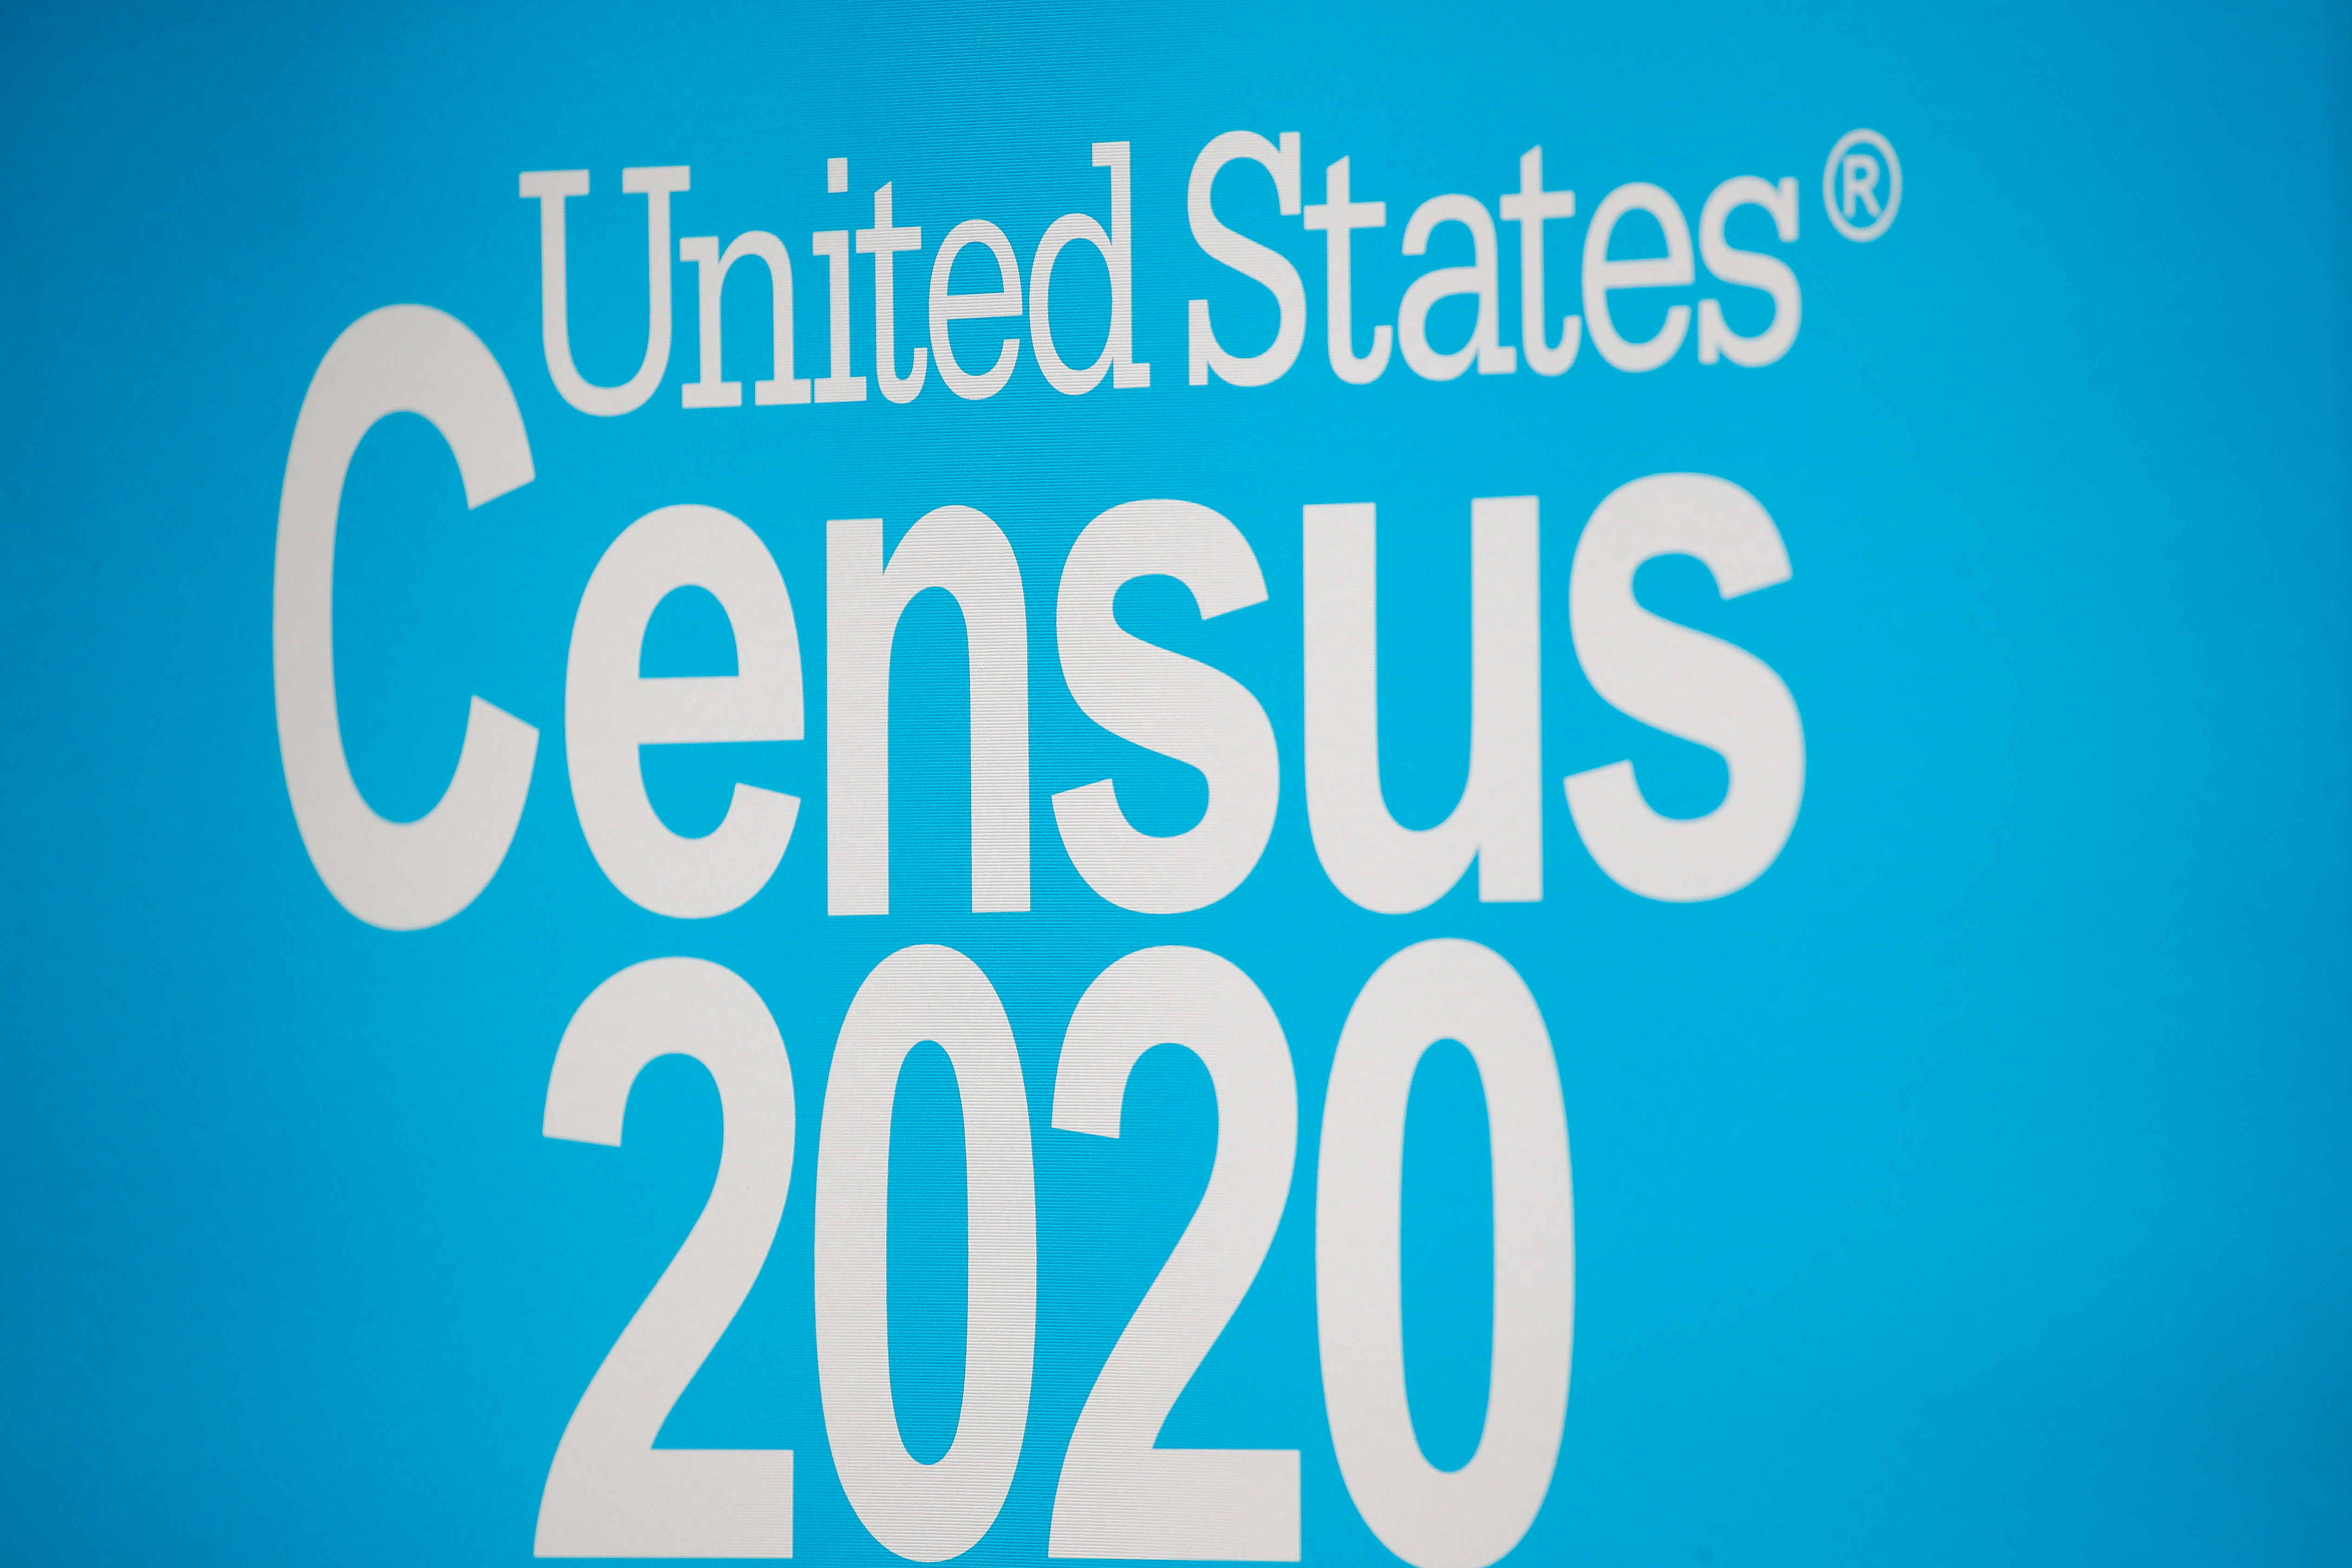 A sign is seen during a promotional event for the U.S. Census in Times Square in New York City, New York, U.S., September 23, 2020. REUTERS/Brendan McDermid